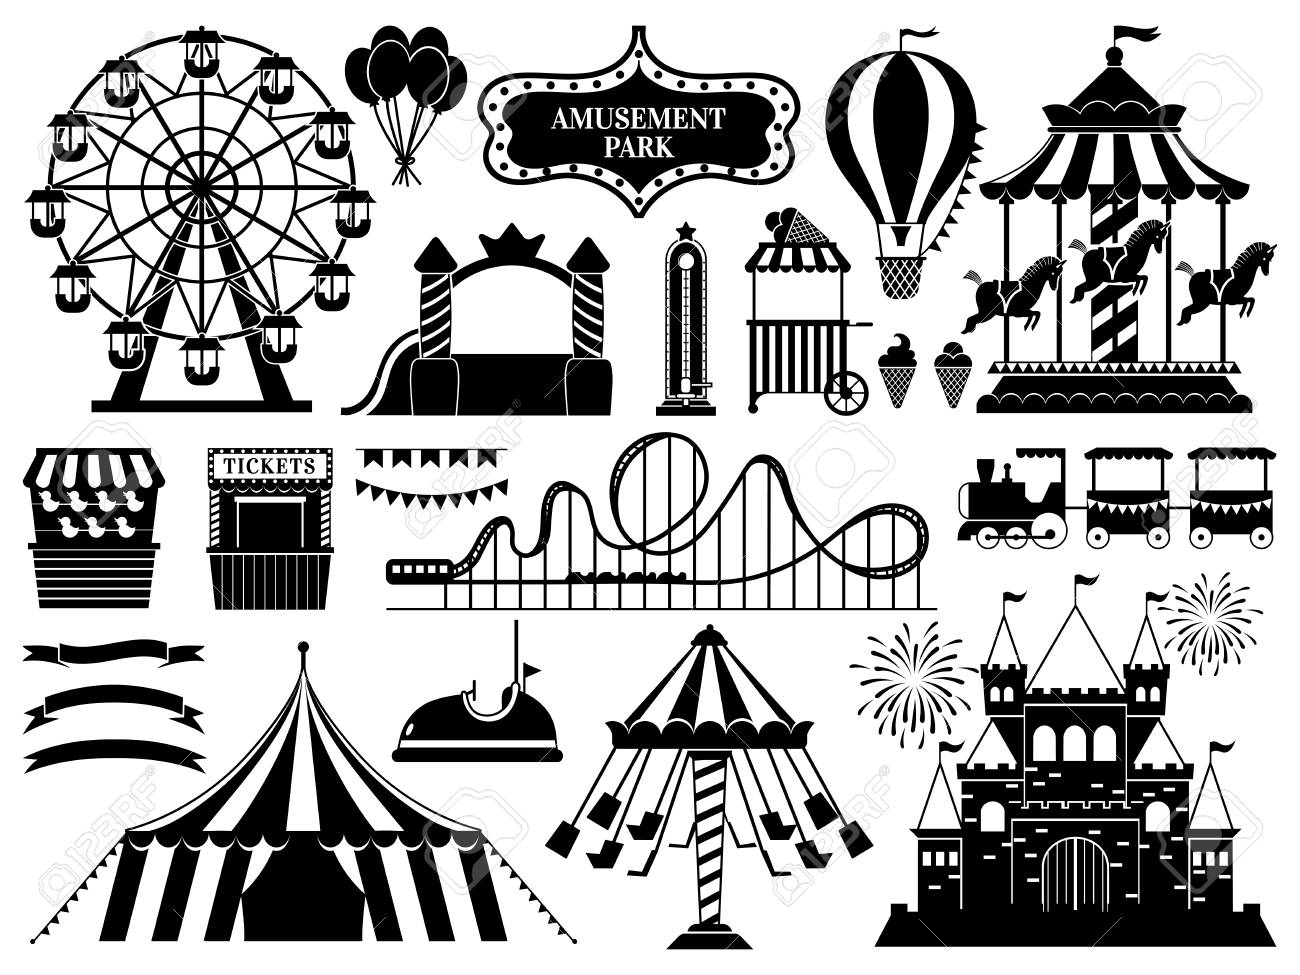 Amusement park silhouette. Carnival parks carousel attraction, fun rollercoaster and ferris wheel attractions. Amuse circus carousel, air balloon and castle. Isolated vector icons set - 120307807